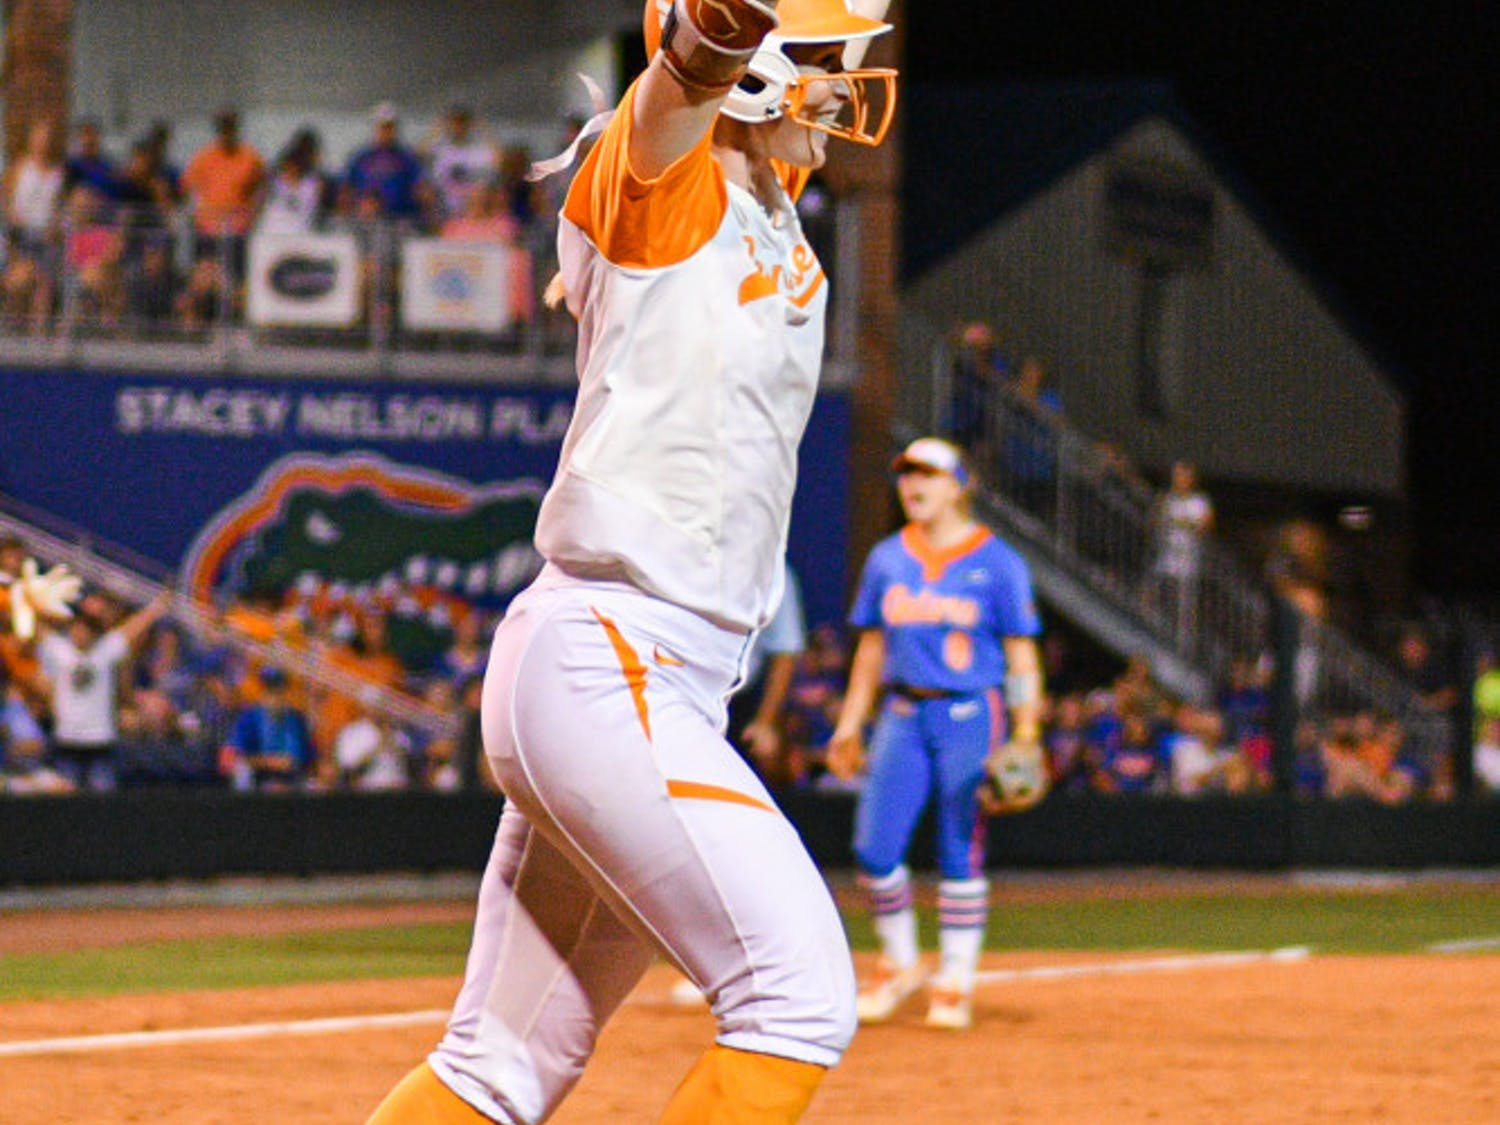 Tennessee forced a do-or-die Game 3 in the Gainesville Super Regional with an extra-innings win over Florida on Saturday.